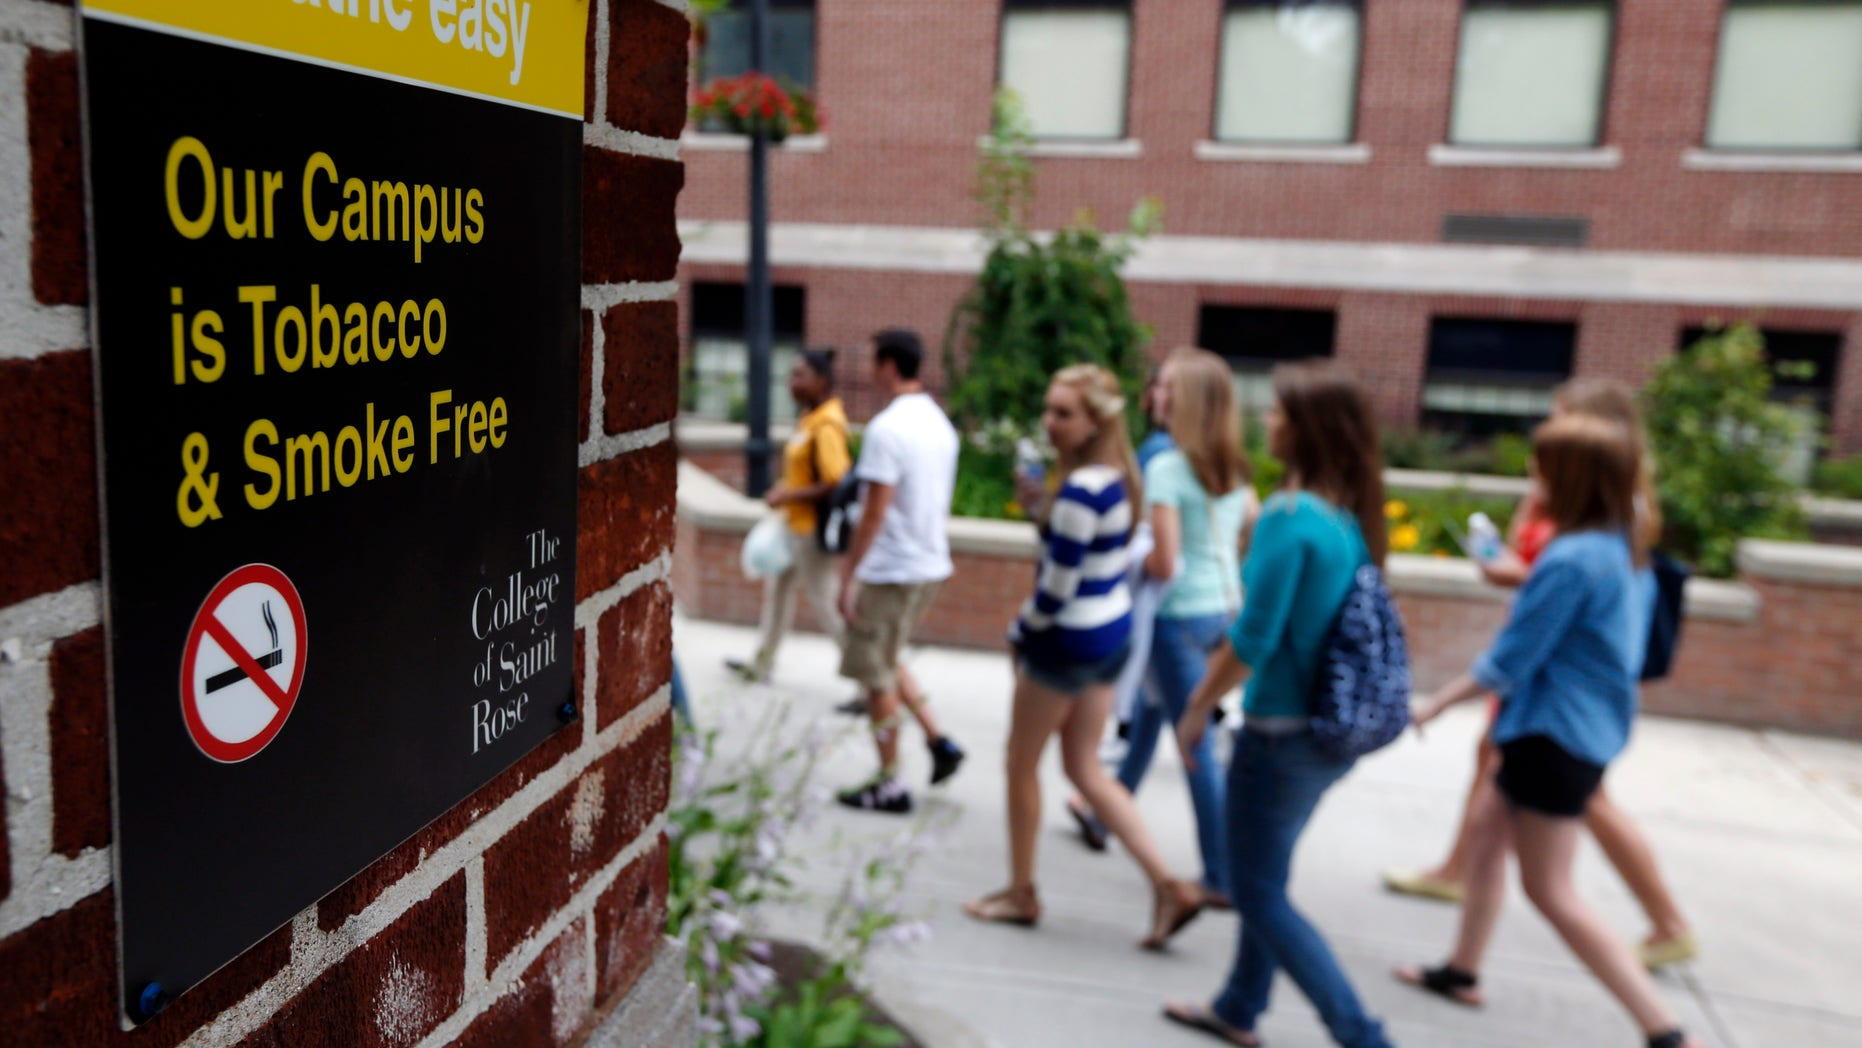 June 26, 2012: Students take an orientation tour at the College of Saint Rose in Albany, N.Y. Tobacco use bans are sweeping campuses nationwide.